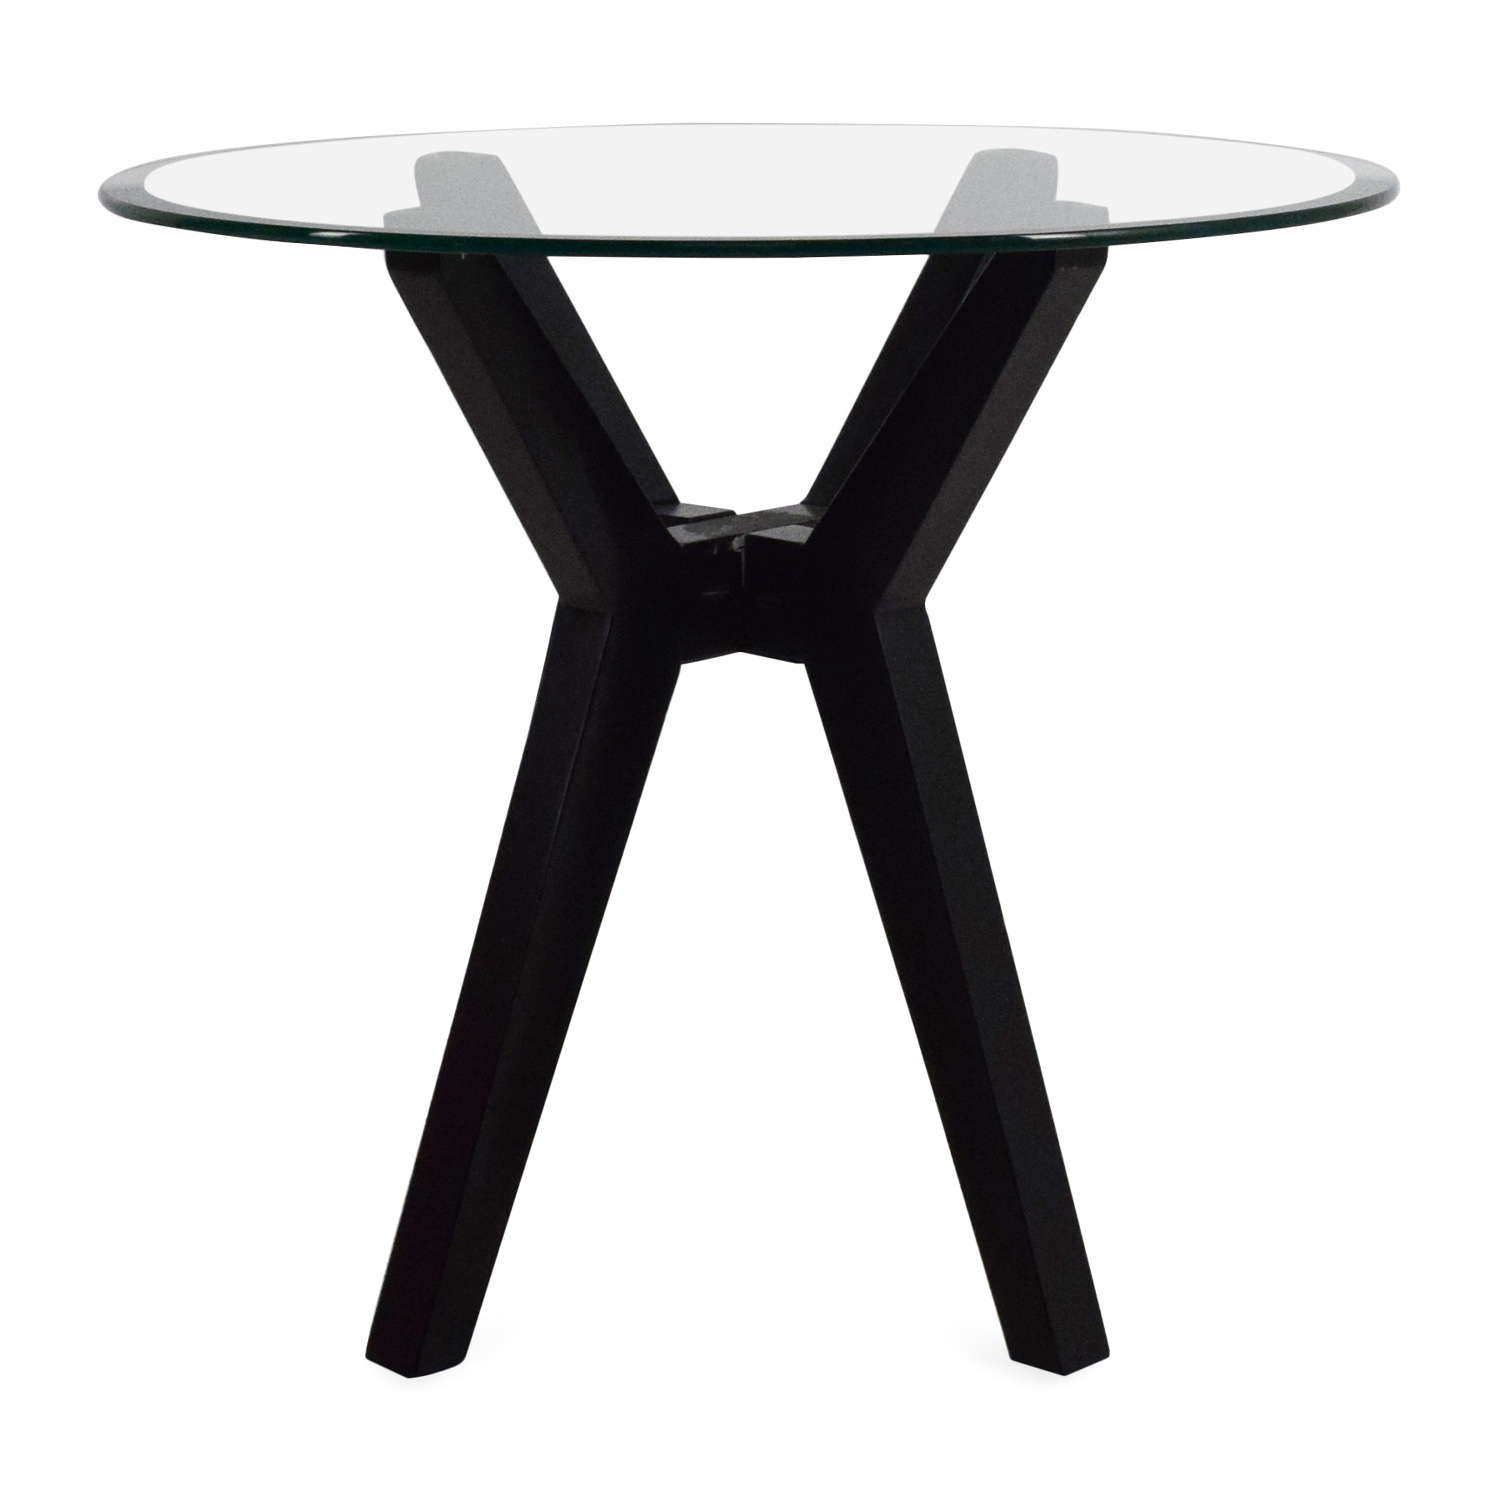 Macys Macys Glass Top End Table for sale